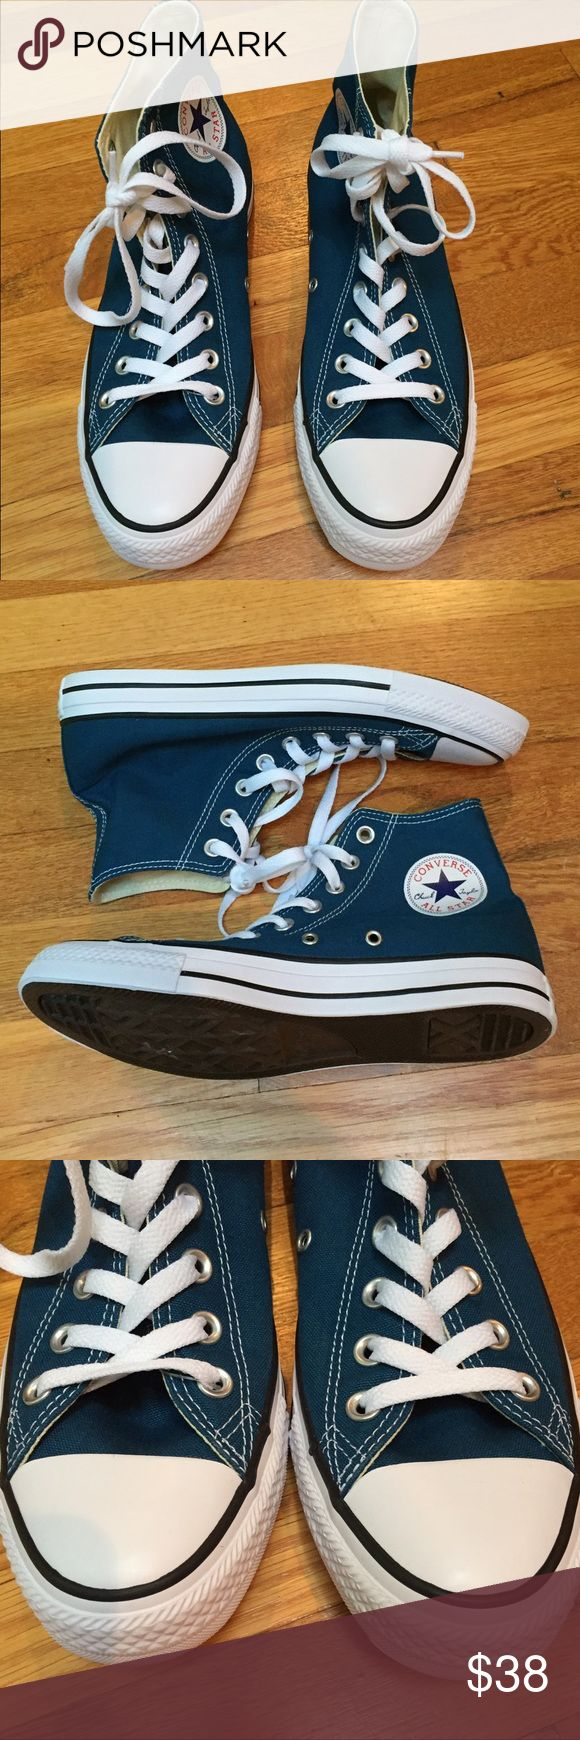 NWOB Converse all star high top sneakers New, without box. Converse high top sneakers. Hard to describe and capture color, kind of like a deep teal. Women's 9, men's 7. Retail for $60 Converse Shoes Sneakers